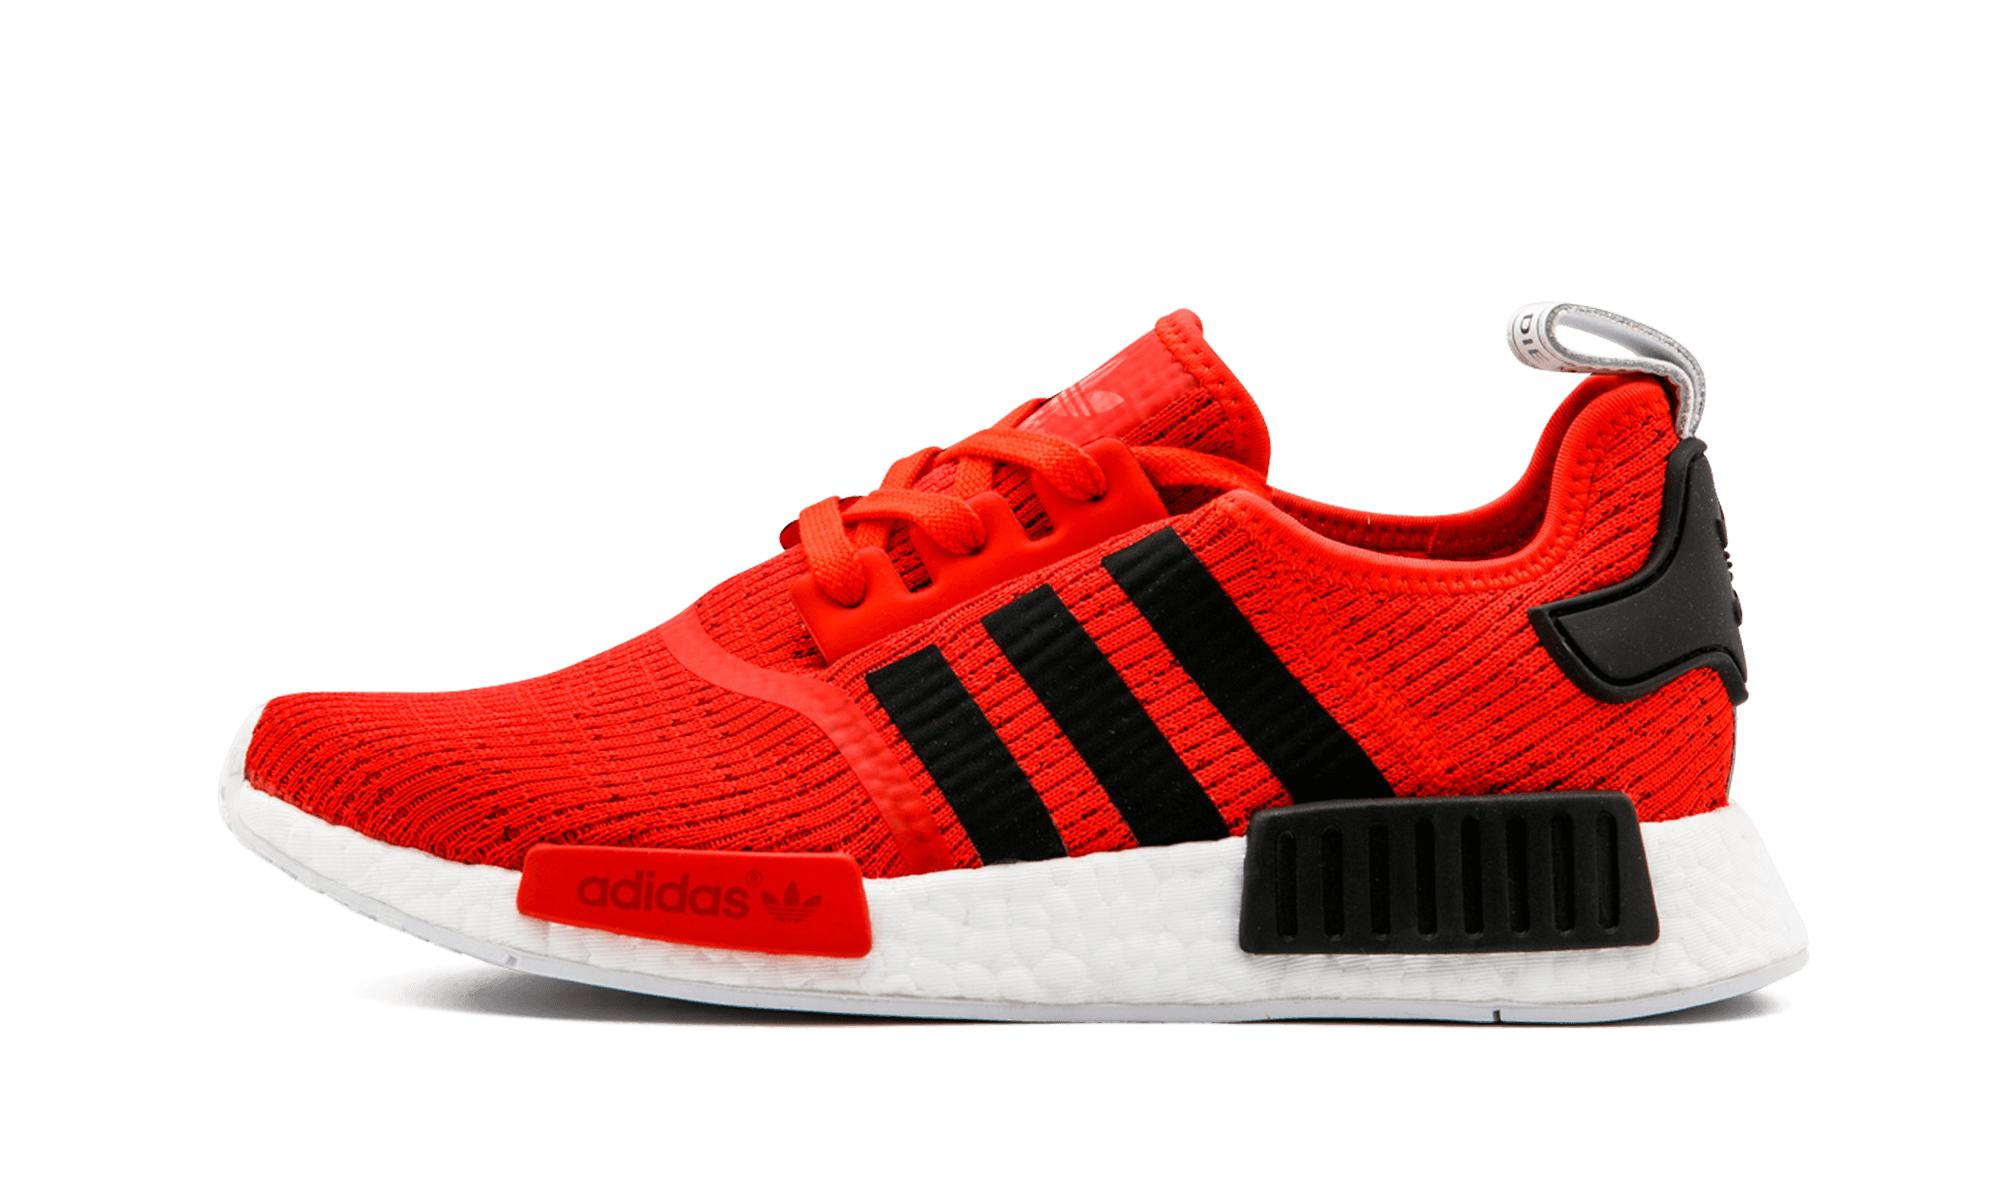 bfbb33f34 adidas Nmd R1 Core Red black in Red for Men - Save 11% - Lyst